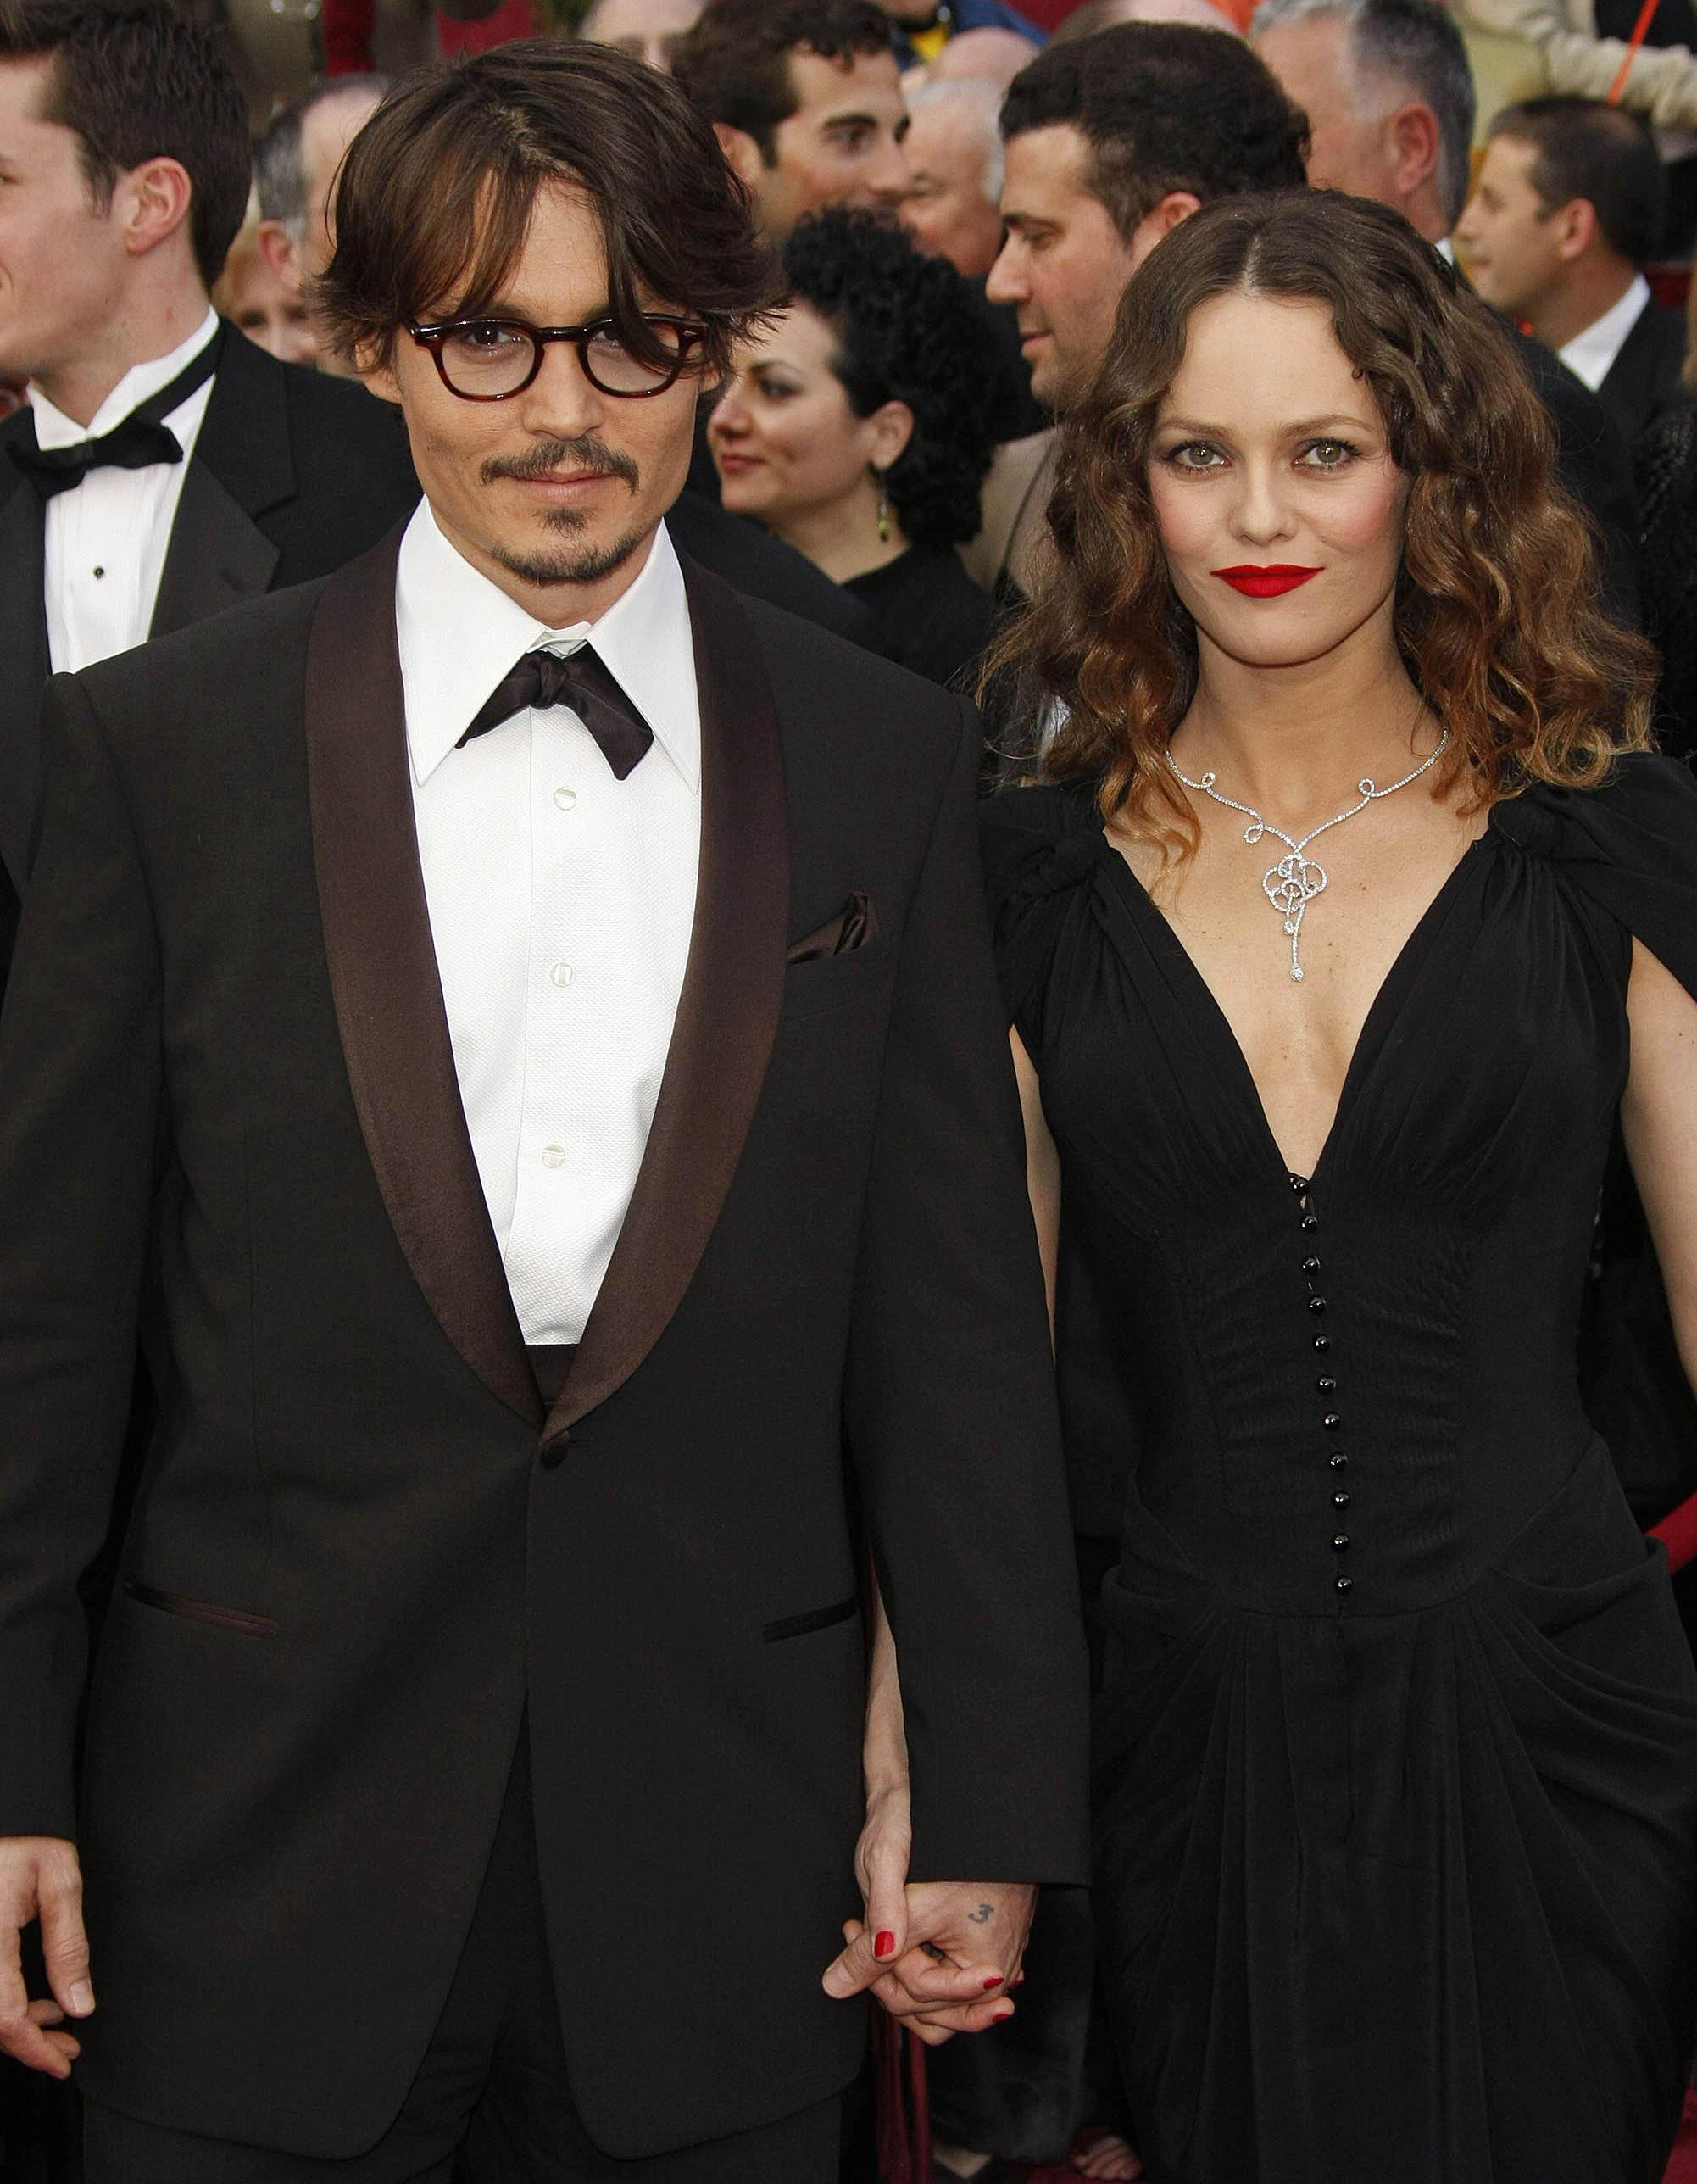 vanessa paradis en couple ses plus belles histoires d amour elle. Black Bedroom Furniture Sets. Home Design Ideas